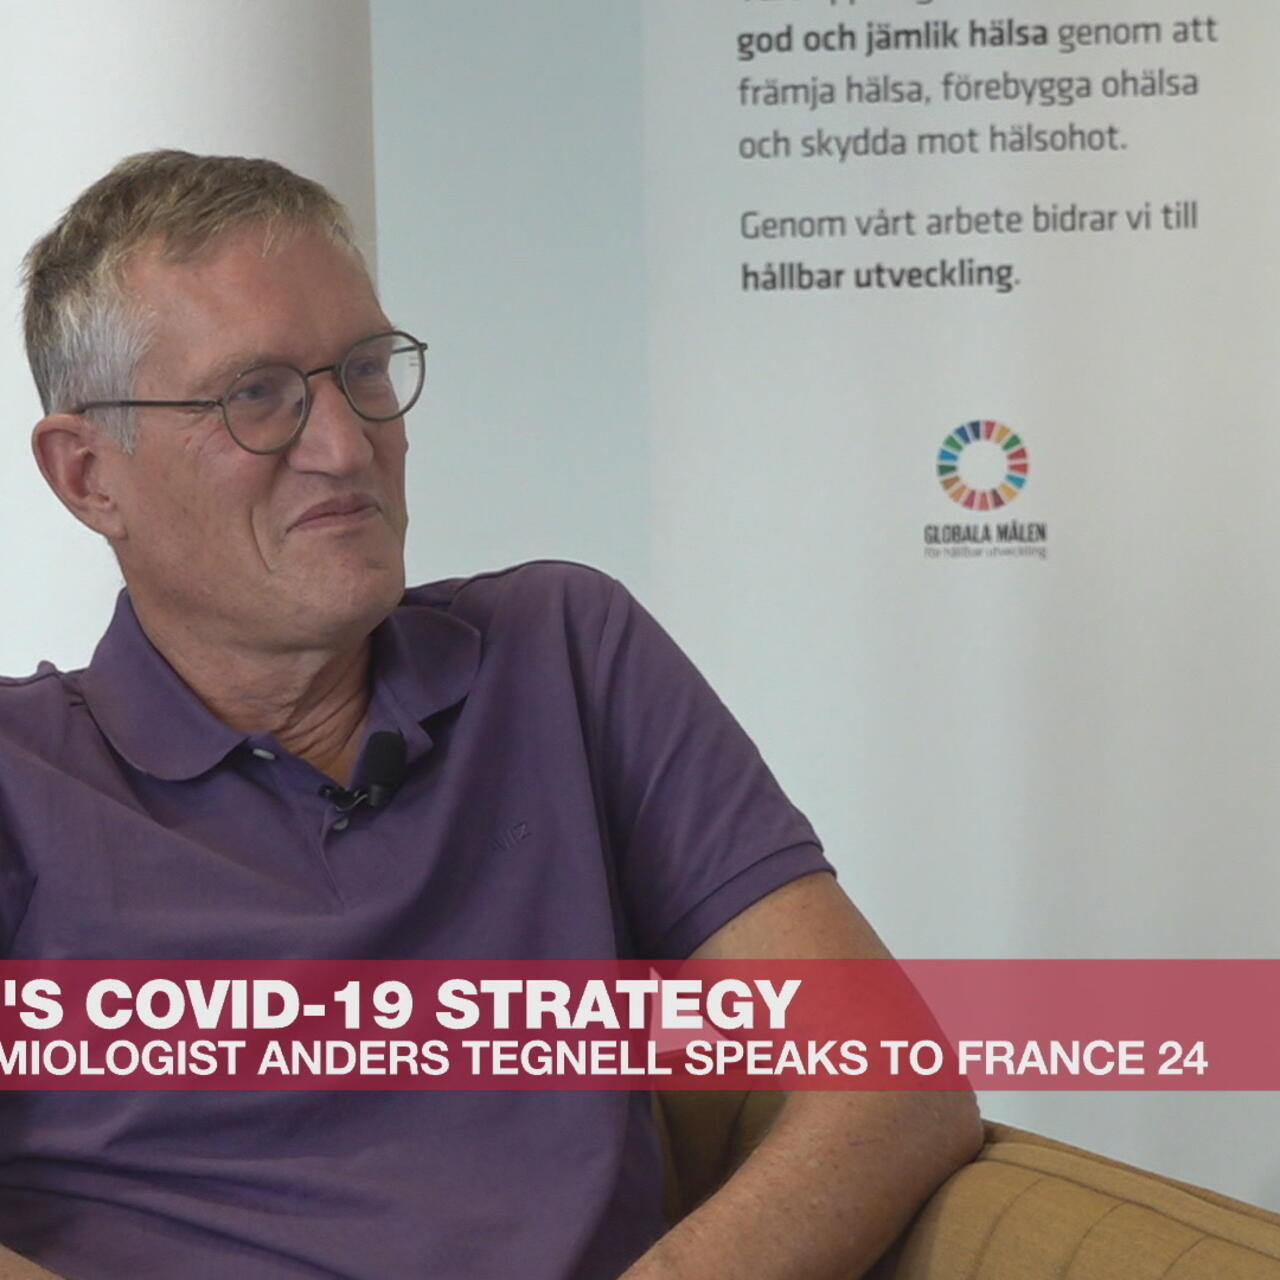 Sweden S Chief Epidemiologist We Are Happy With Our Strategy On Covid 19 The Interview